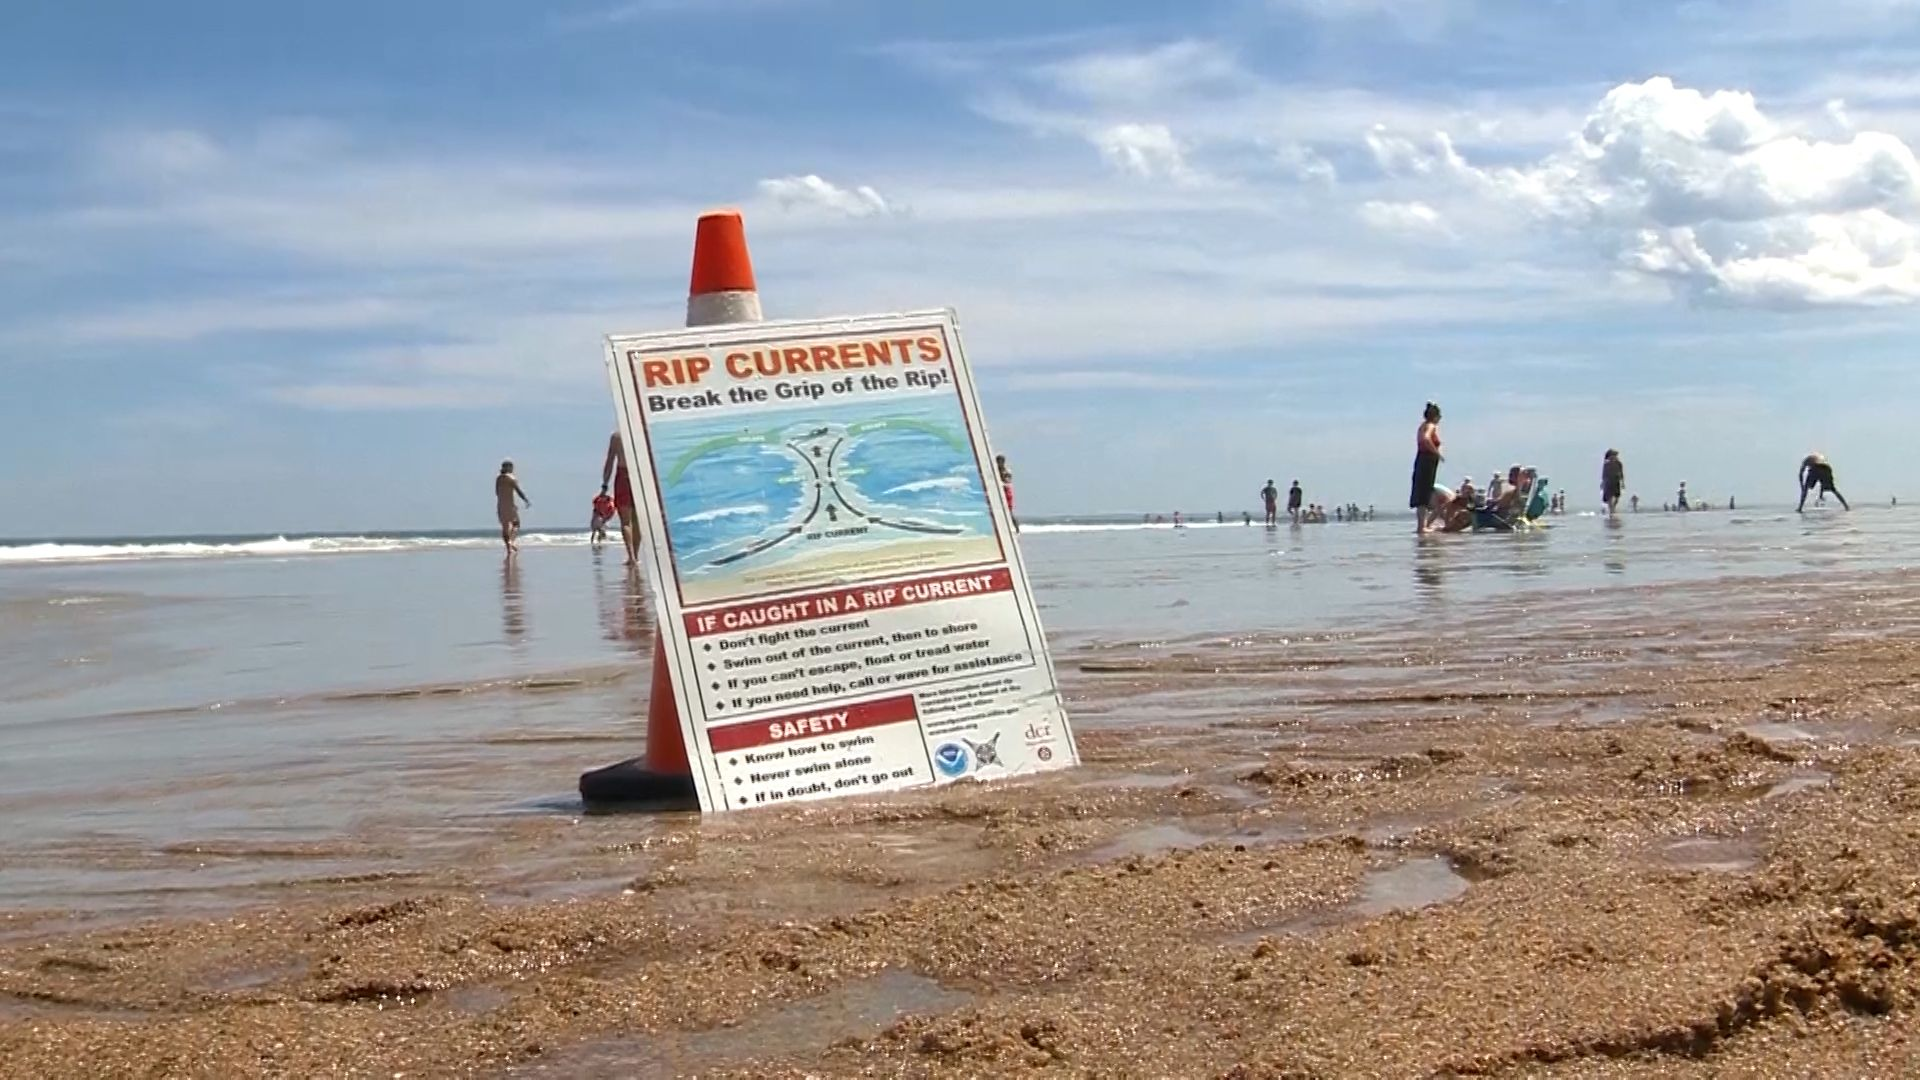 Rip currents sweep multiple people out to sea at Salisbury Beach